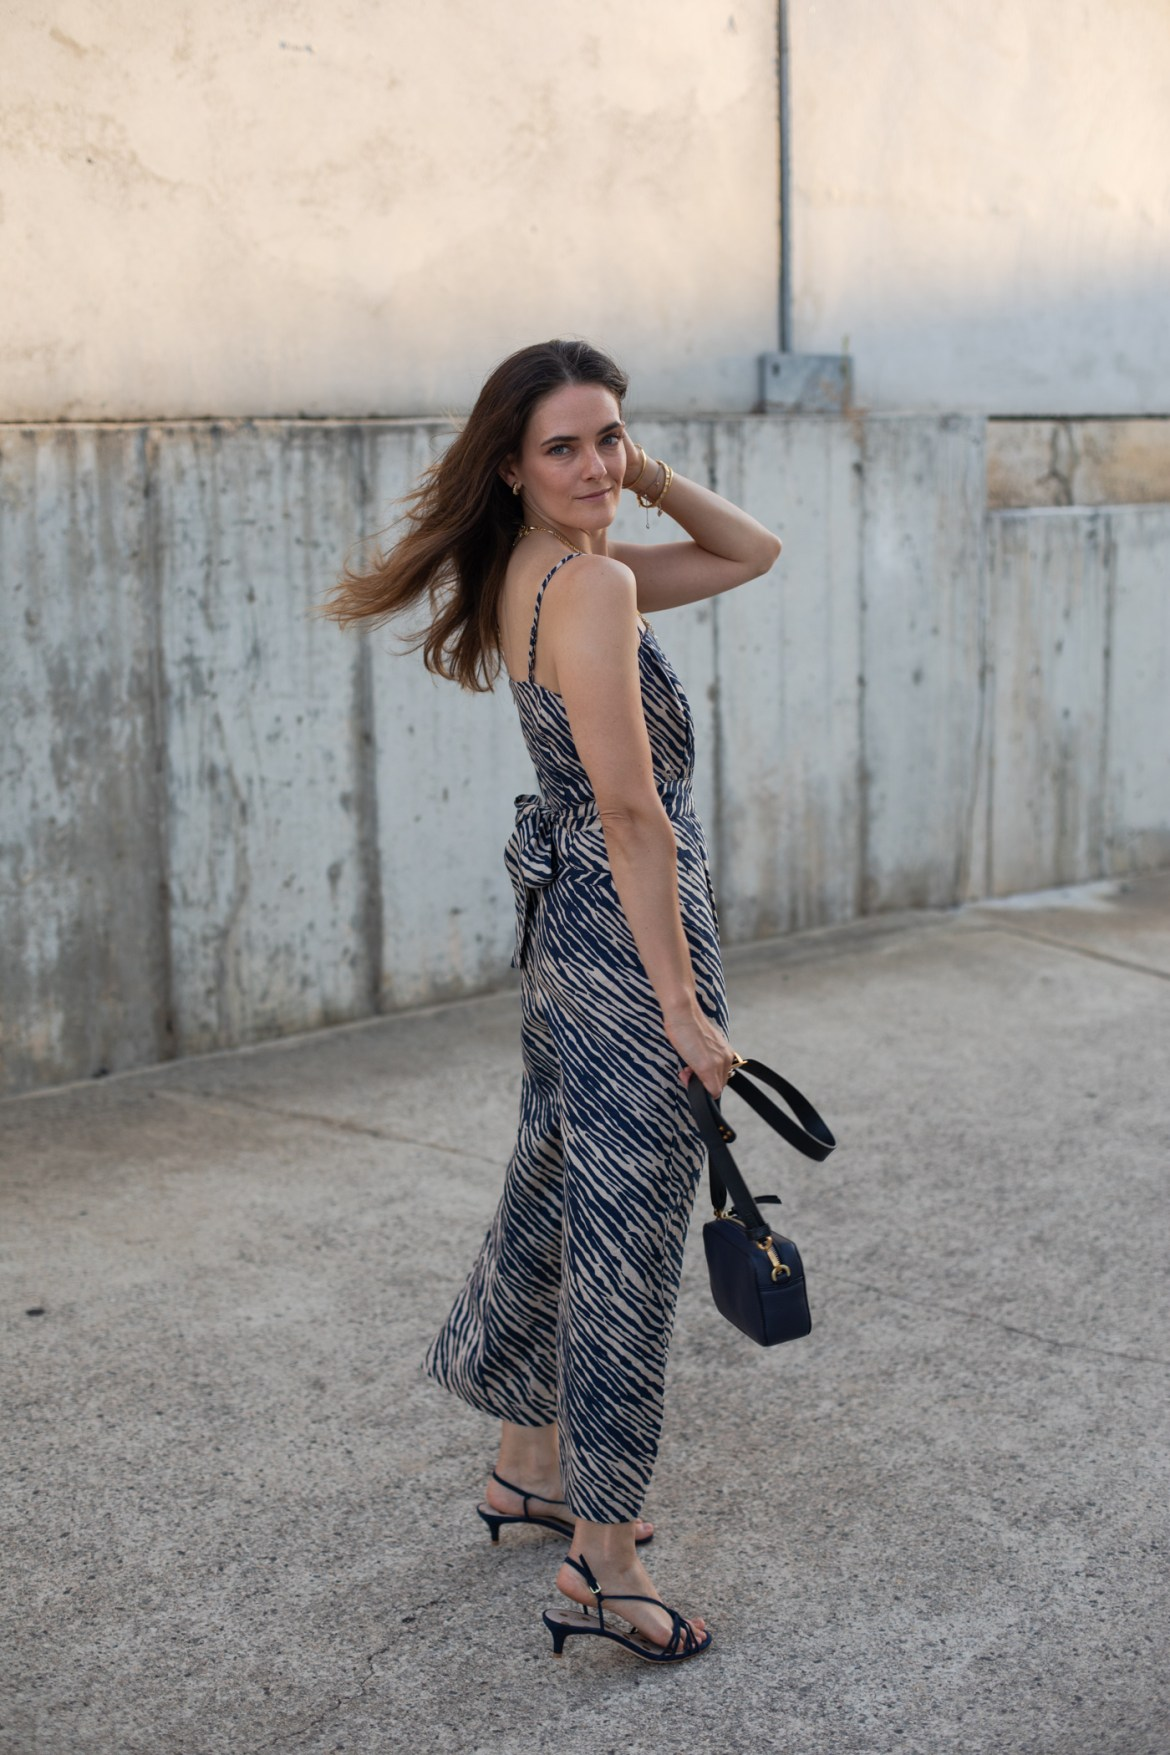 Boden zebra print linen outfit and strappy heels